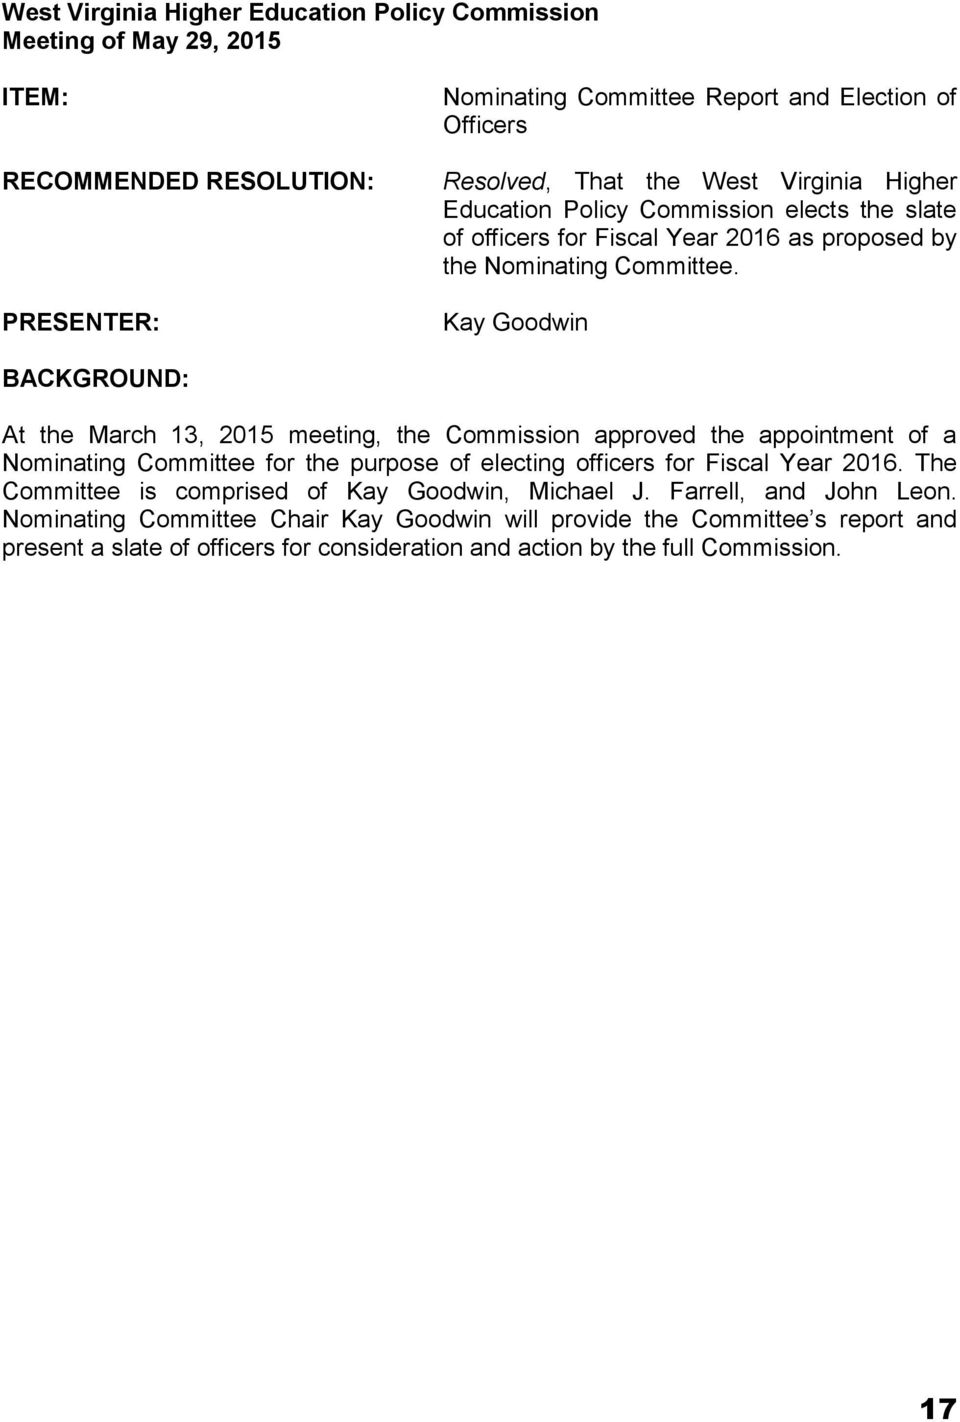 Kay Goodwin BACKGROUND: At the March 13, 2015 meeting, the Commission approved the appointment of a Nominating Committee for the purpose of electing officers for Fiscal Year 2016.